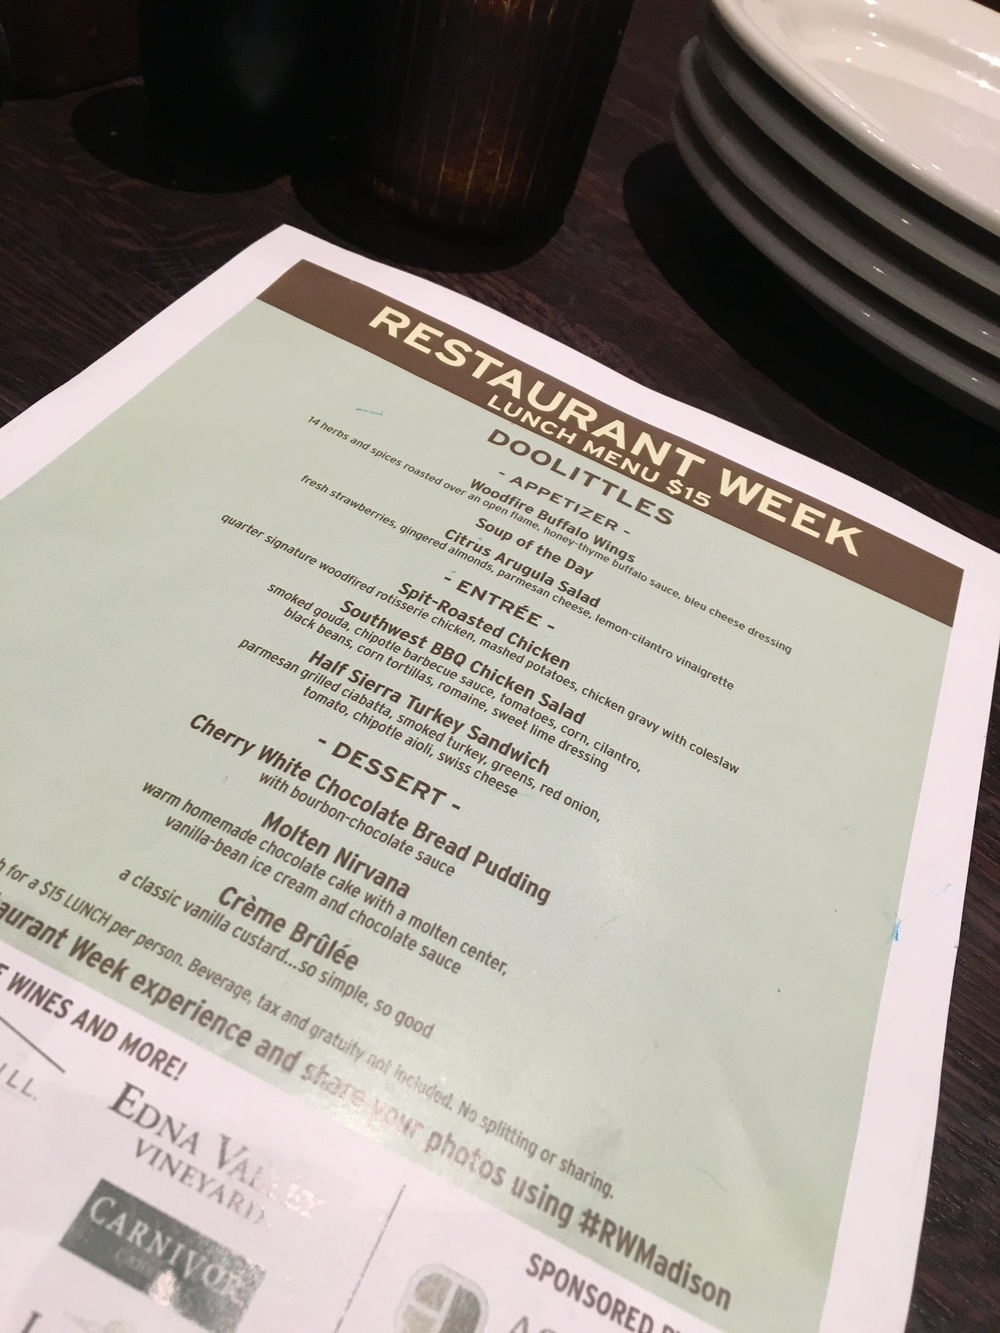 Restaurant Week Menu for Doolittles Woodfire Grill                                                                                                                           Photo by Epicurean Chronicles